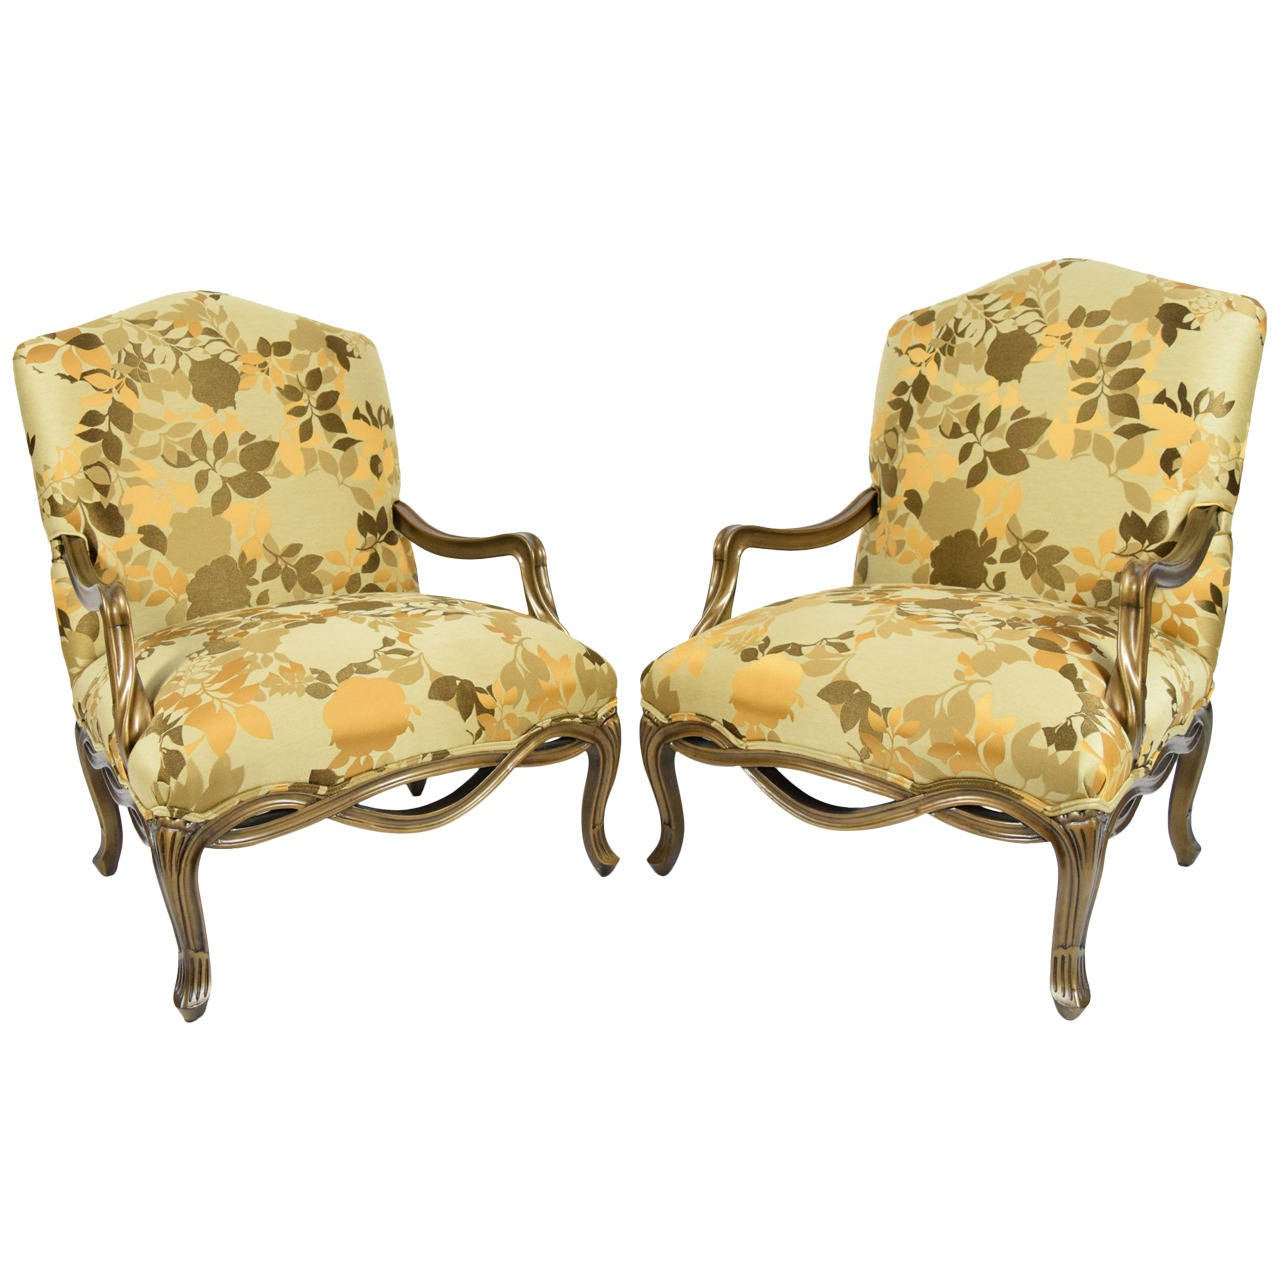 Pair Of Custom Louis XVI Style Lounge Chairs With Rubelli Fabric 1